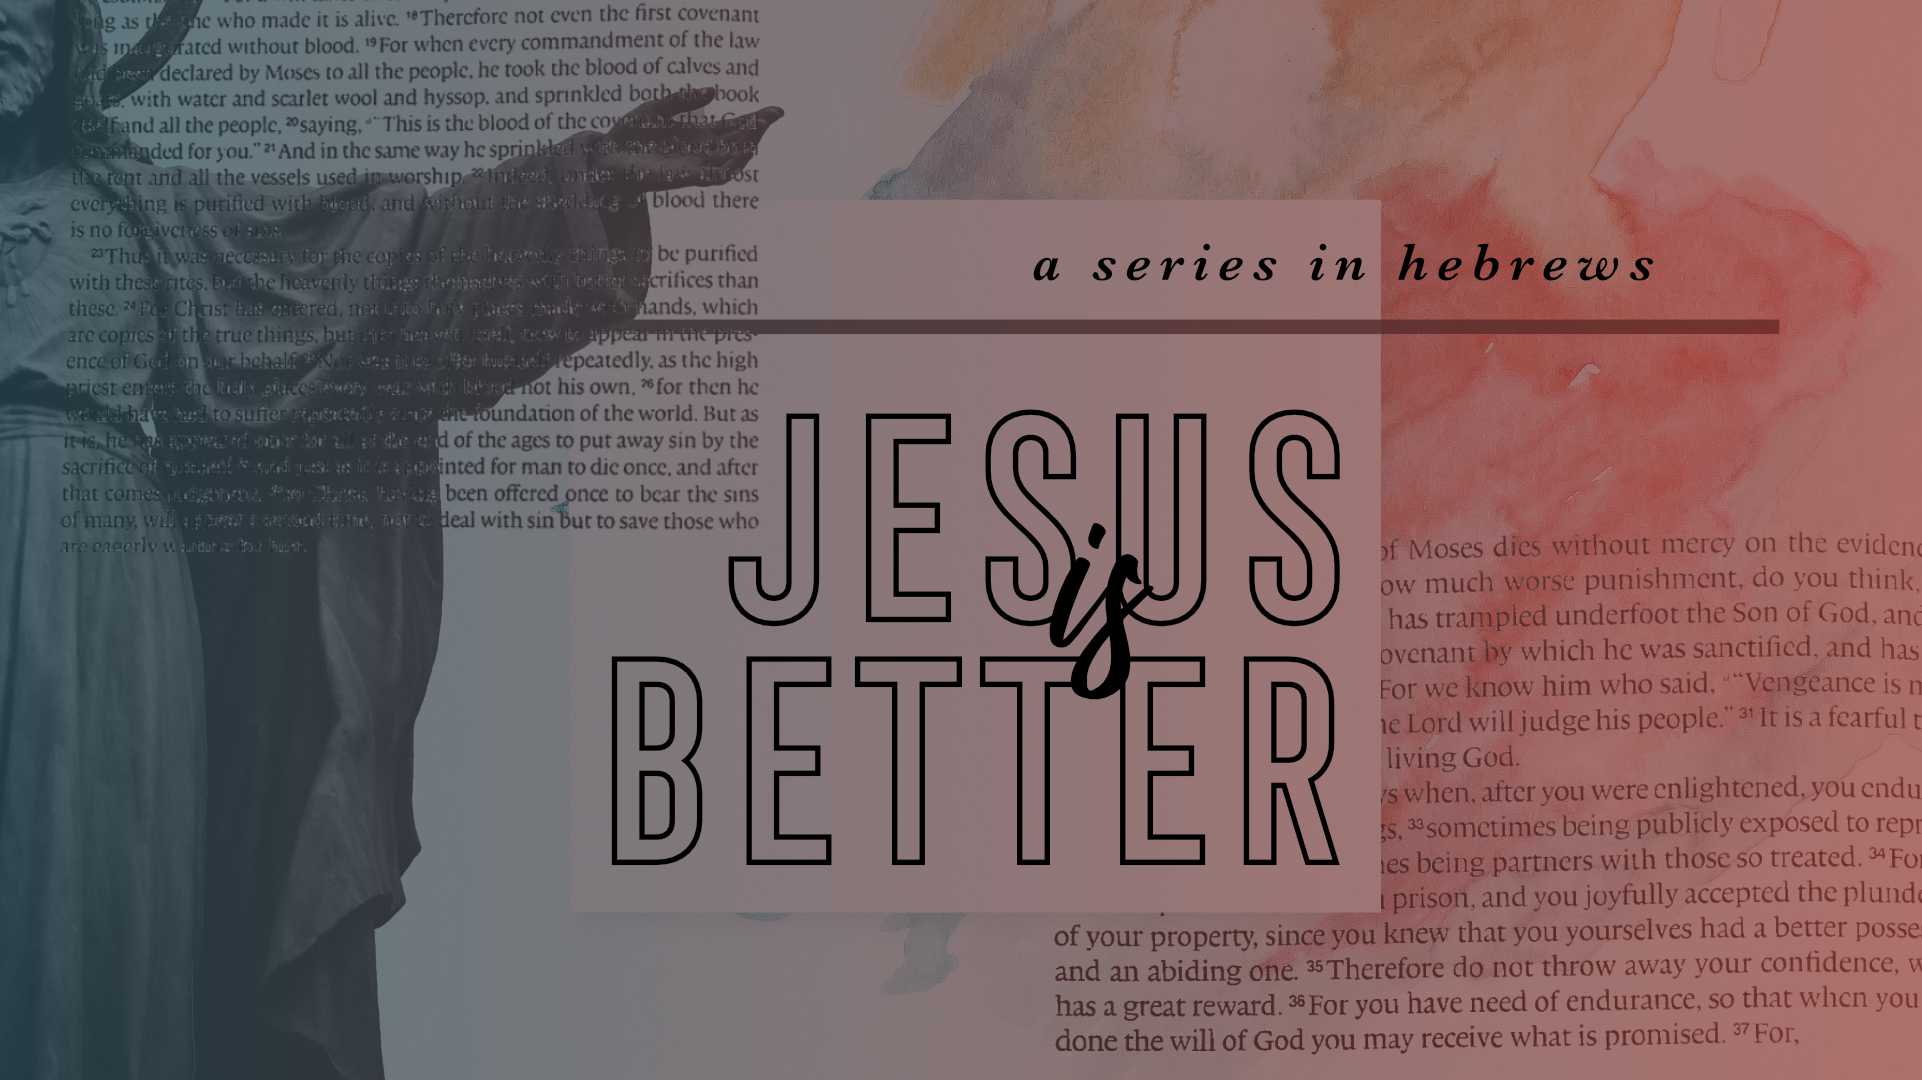 Jesus is Better: A Better Kingdom